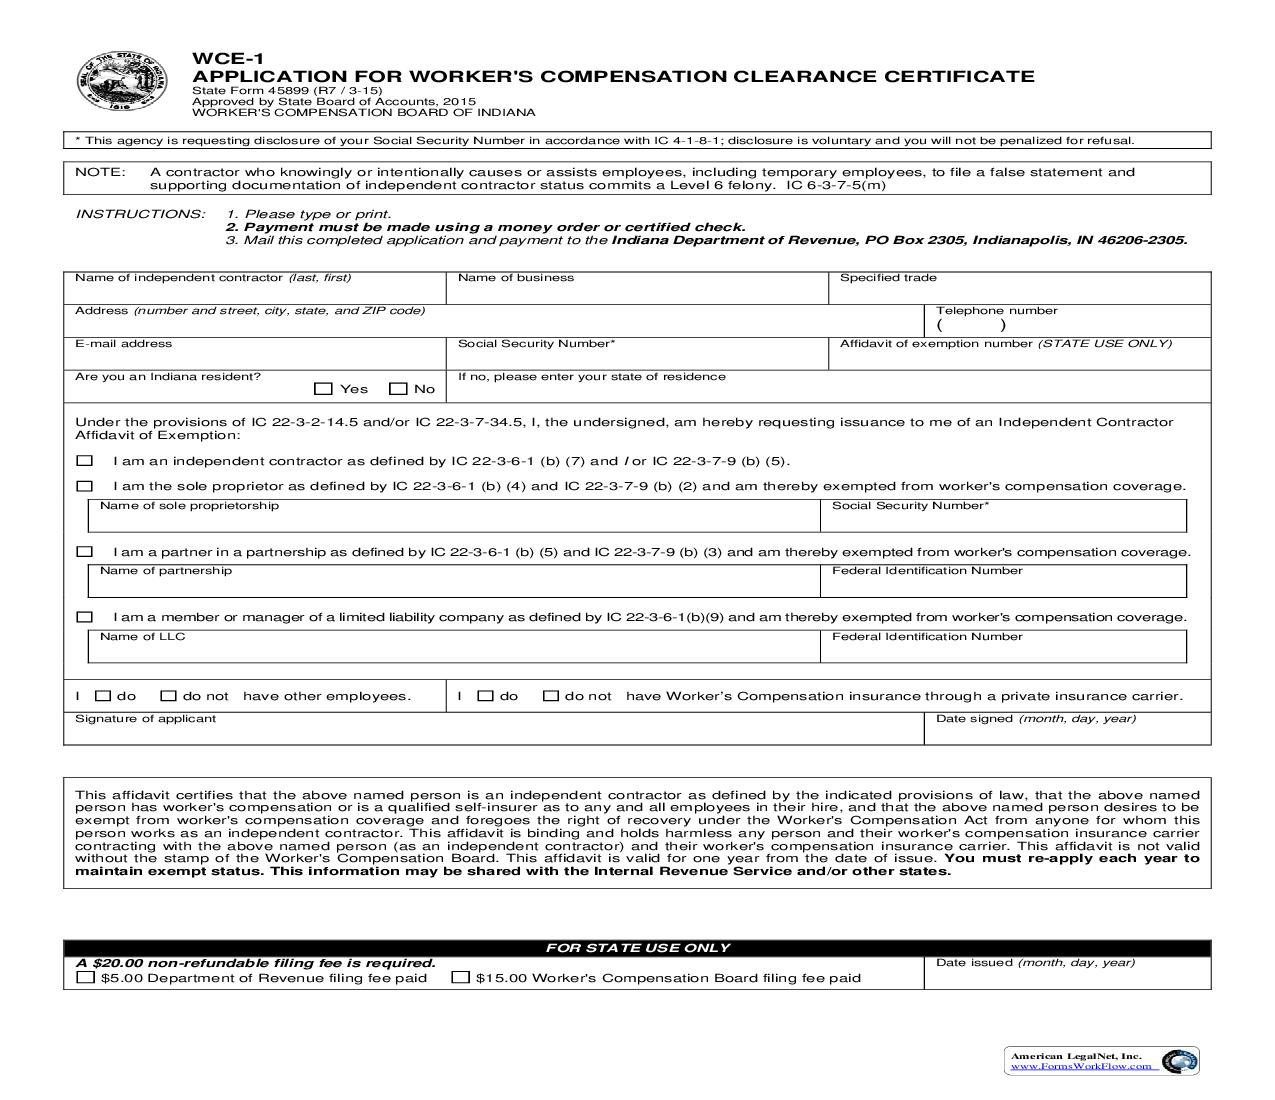 Application For Workers Compensation Clearance Certificate  {WCE-1}      Indiana